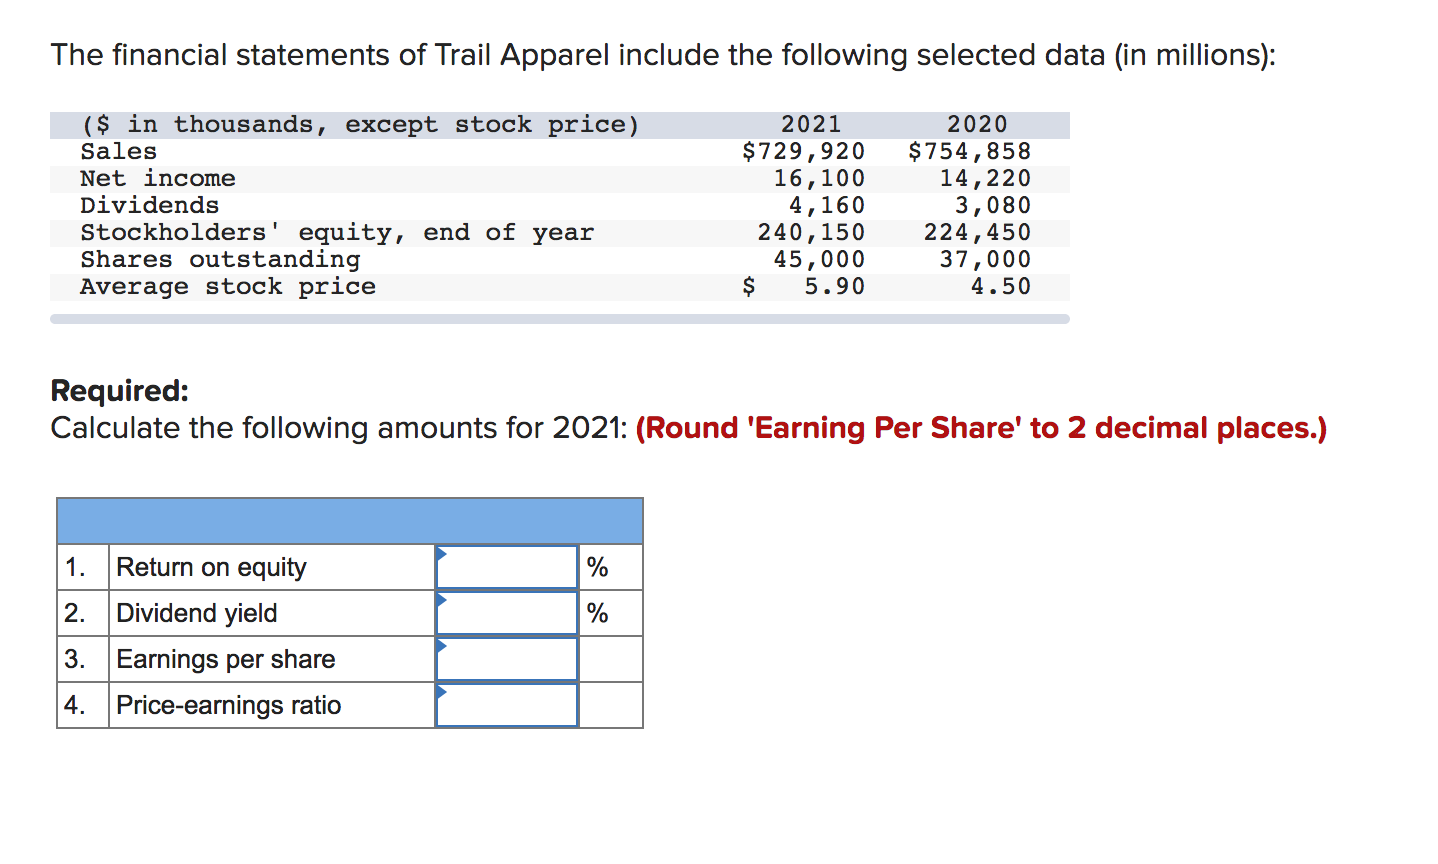 The financial statements of Trail Apparel include the following selected data (in millions): ($ in thousands, except stock price) Sales 2020 2021 $729,920 16,100 4,160 240,150 45,000 5.90 $754,858 14,220 3,080 224,450 37,000 4.50 Net income Dividends Stockholders' equity, end of year Shares outstanding Average stock price $ Required: Calculate the following amounts for 2021: (Round 'Earning Per Share' to 2 decimal places.) Return on equity 1 Dividend yield 2. 3. Earnings per share 4. Price-earnings ratio